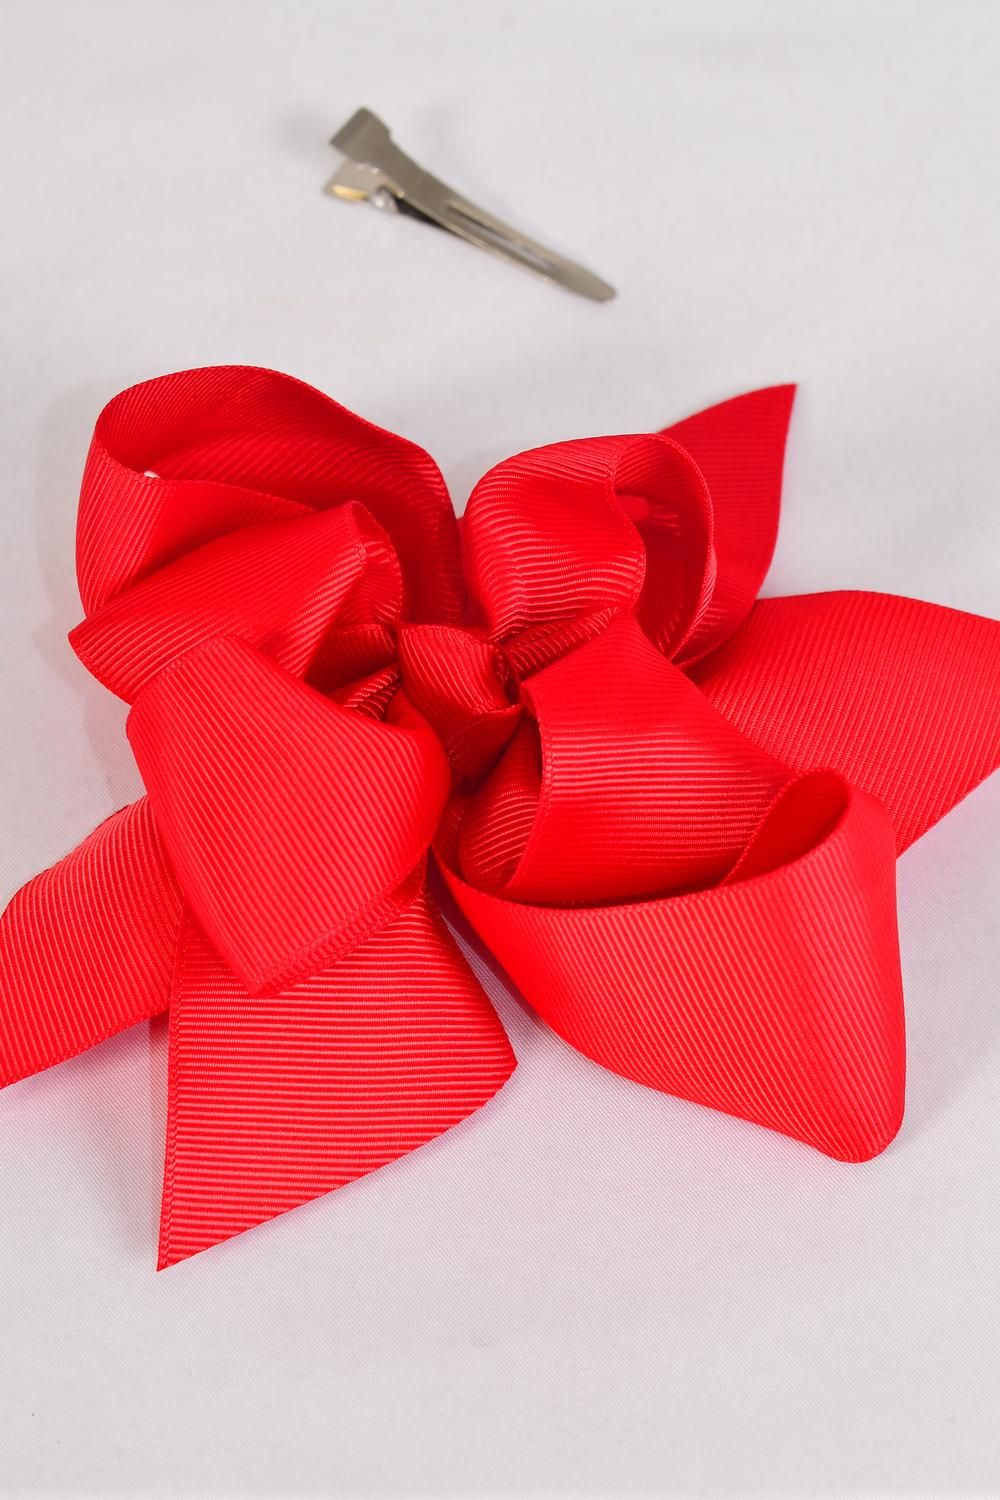 "Hair Bow Large Double Layer Bow Red Grosgrain Bow-tie/DZ **Red** Alligator Clip,Bow-6""x 6"" Wide,Clip Strip & UPC Code"